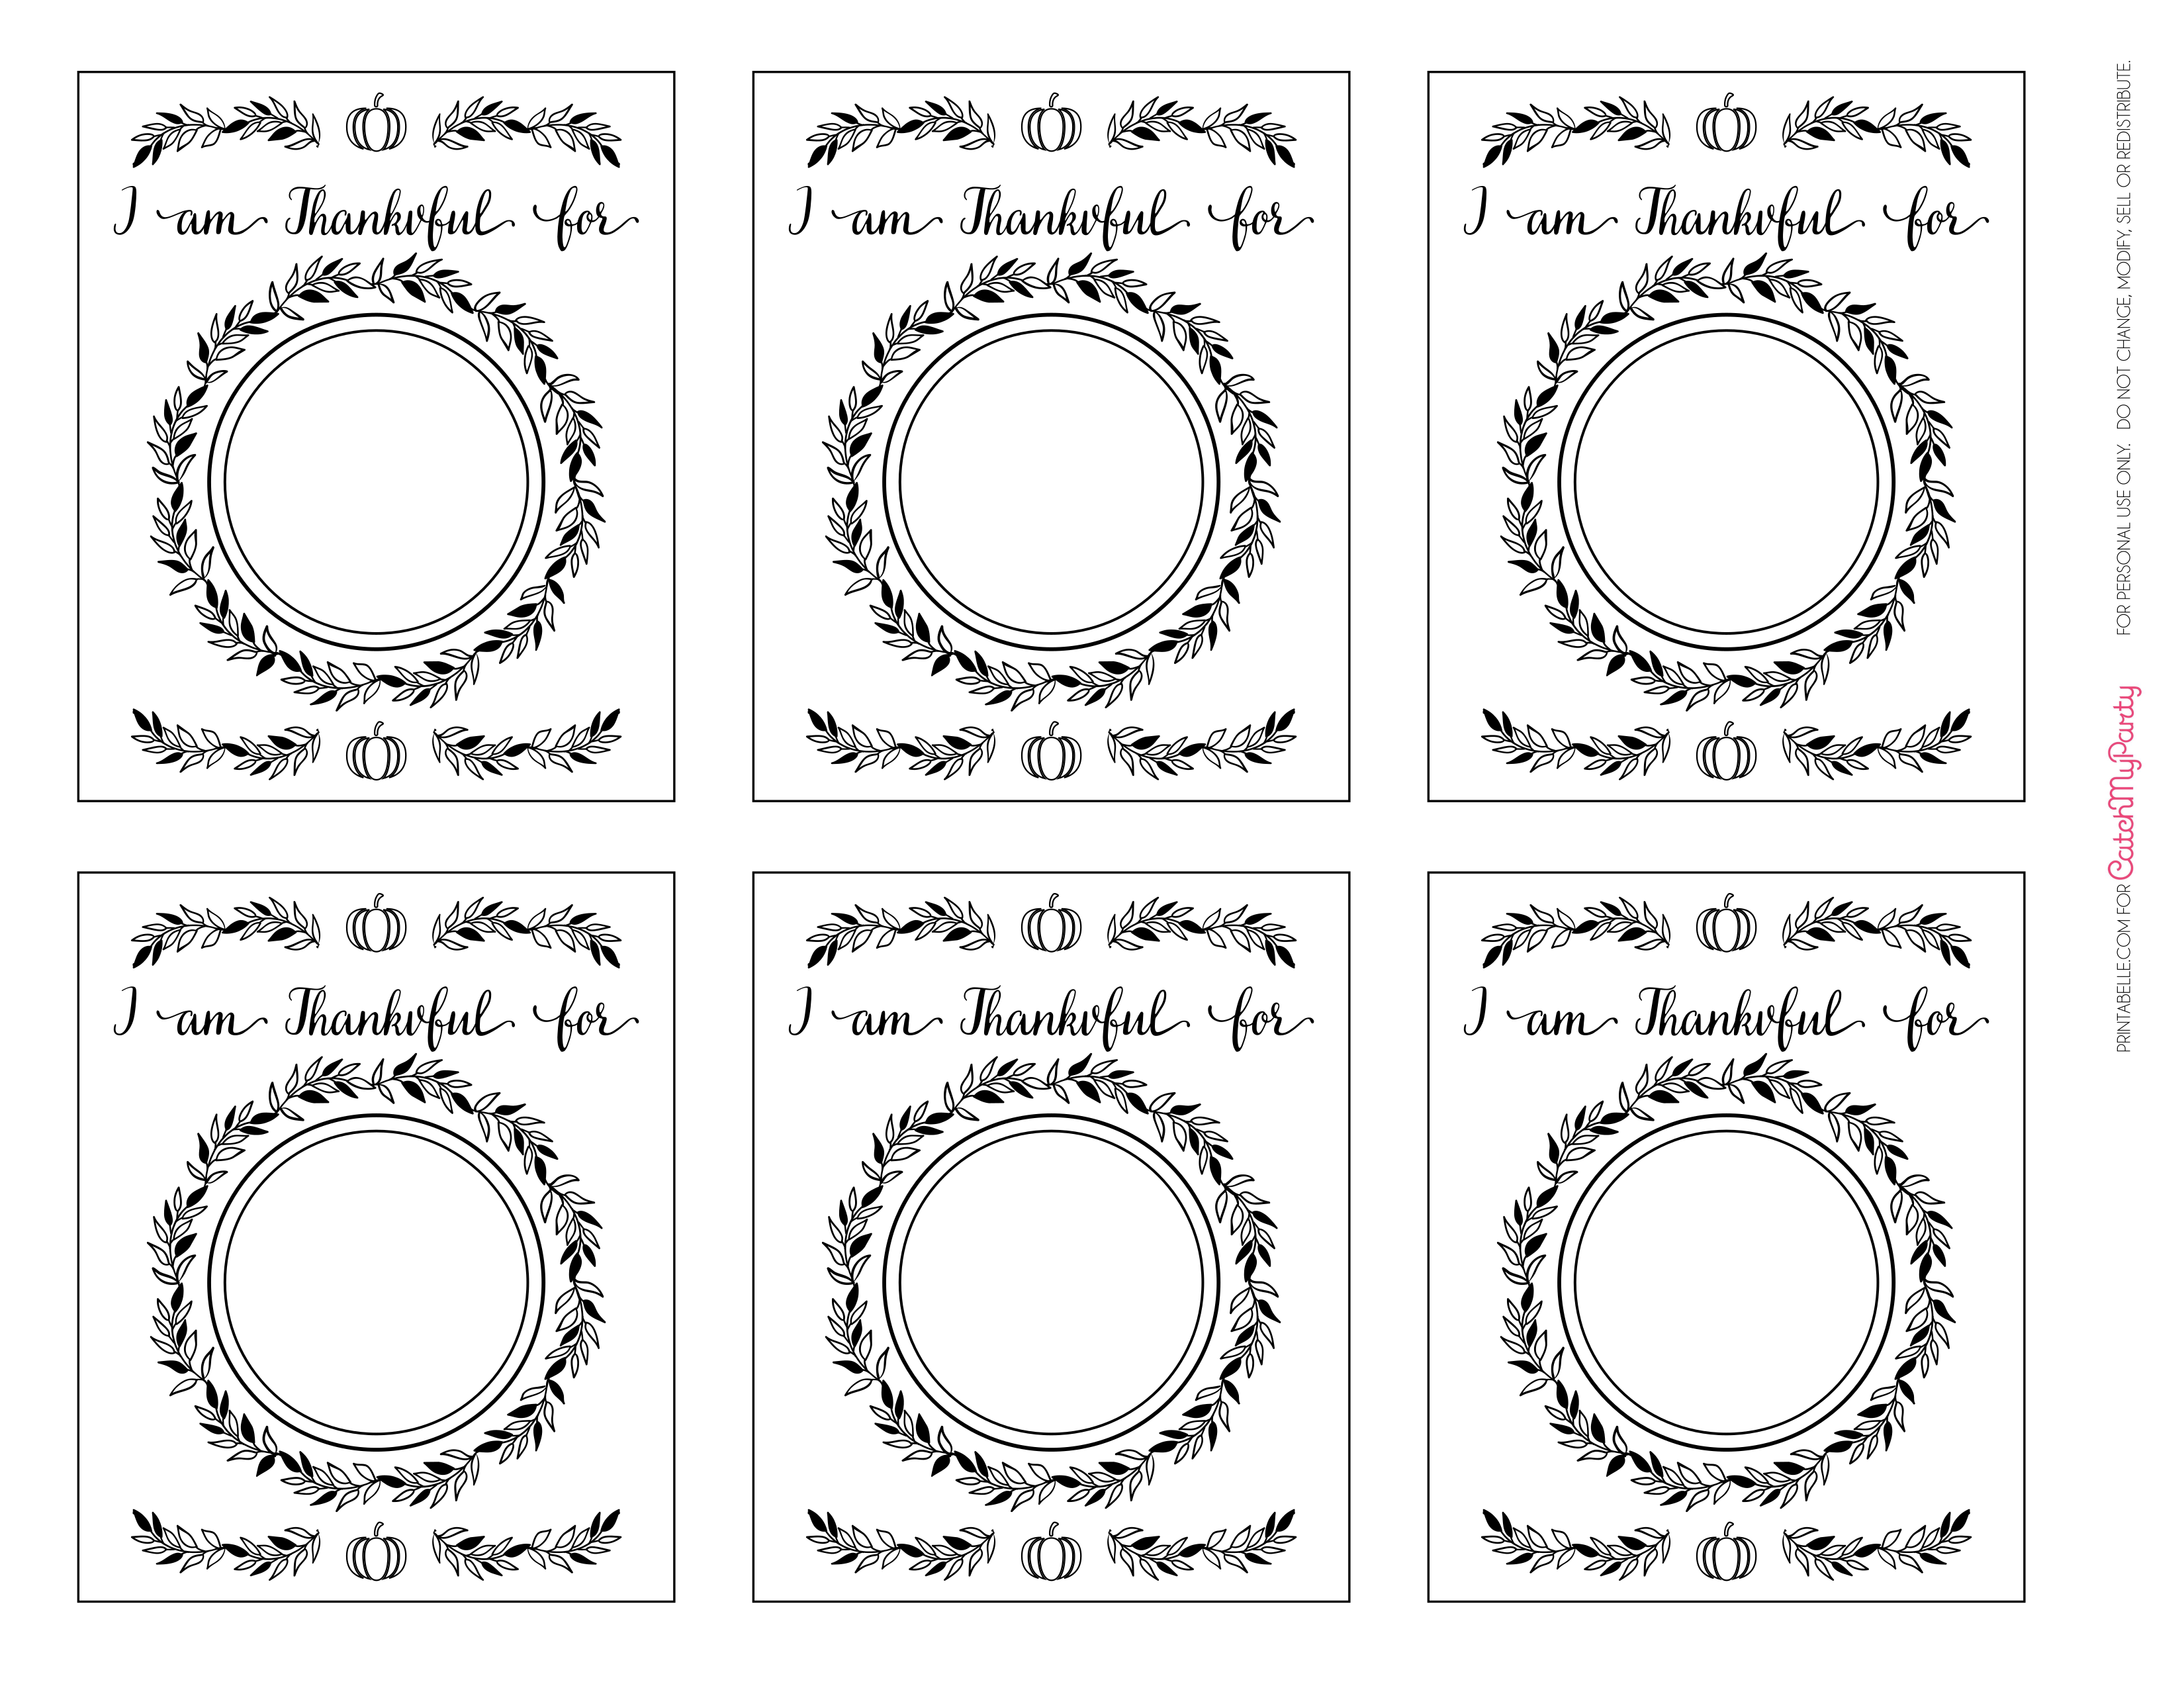 image regarding Thankful Printable referred to as No cost Printable \